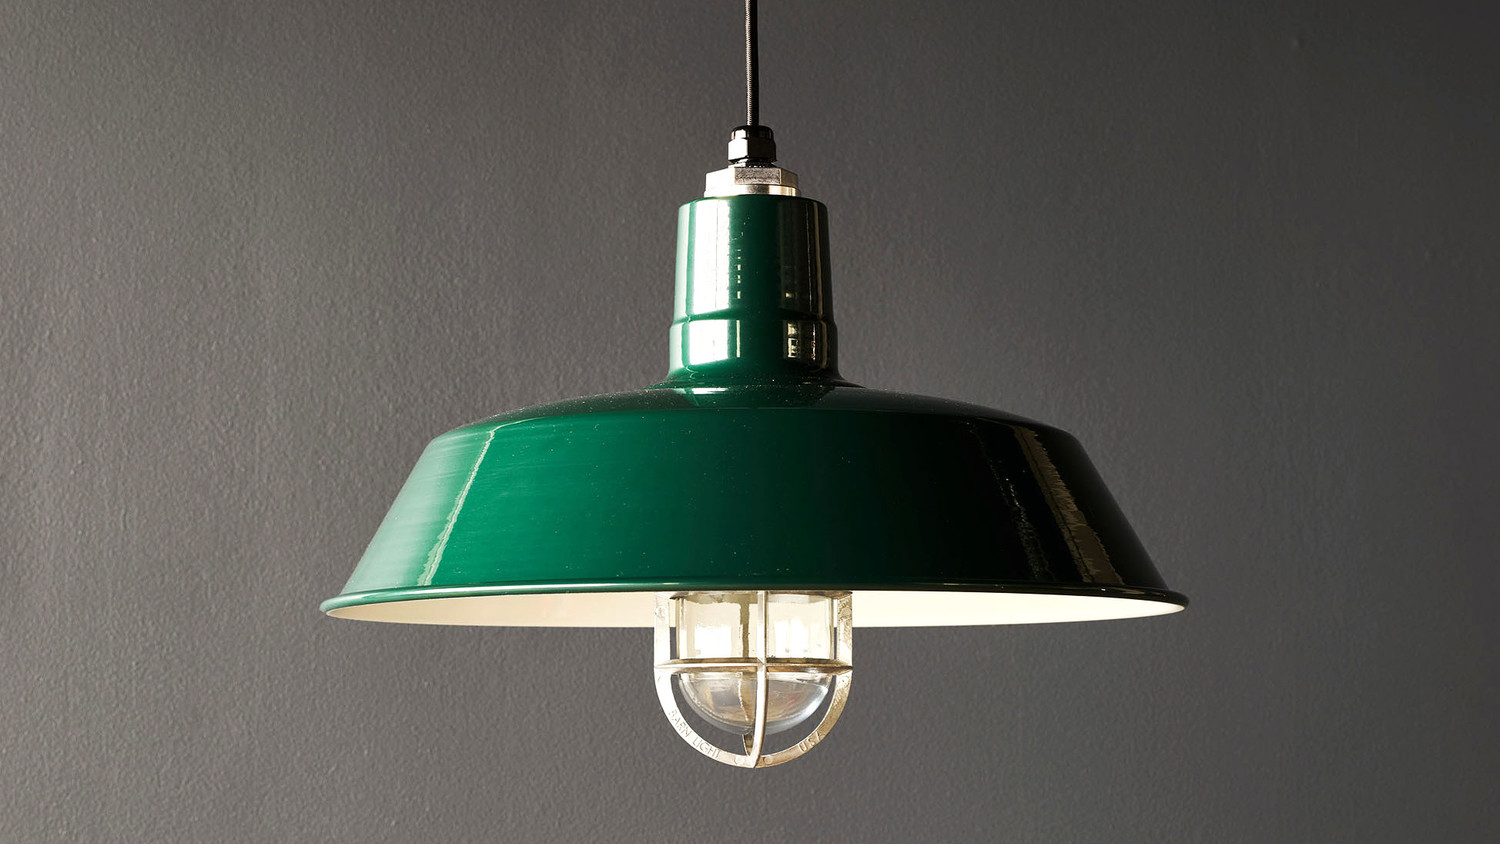 New Sales Are Here! 45% Off Birch Lane Heritage 1 Light Throughout Proctor 1 Light Bowl Pendants (View 14 of 30)